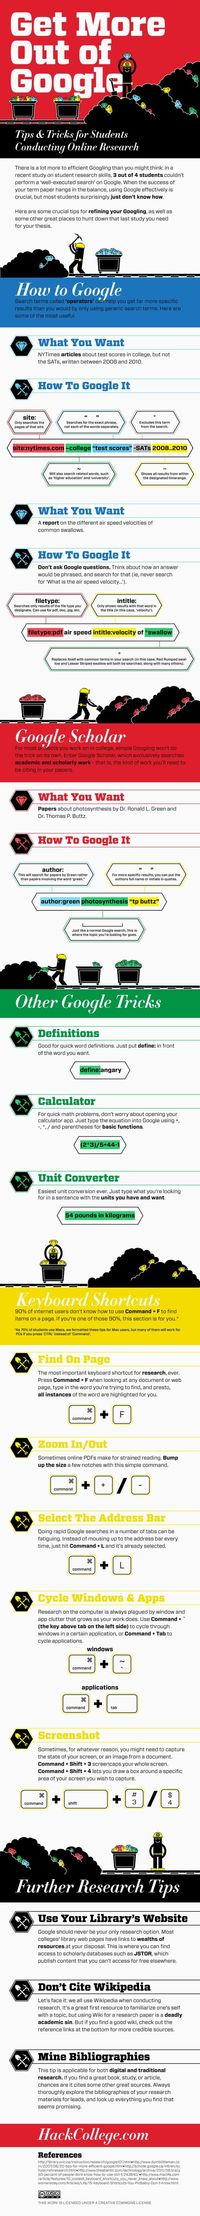 How to make efficient Google searches